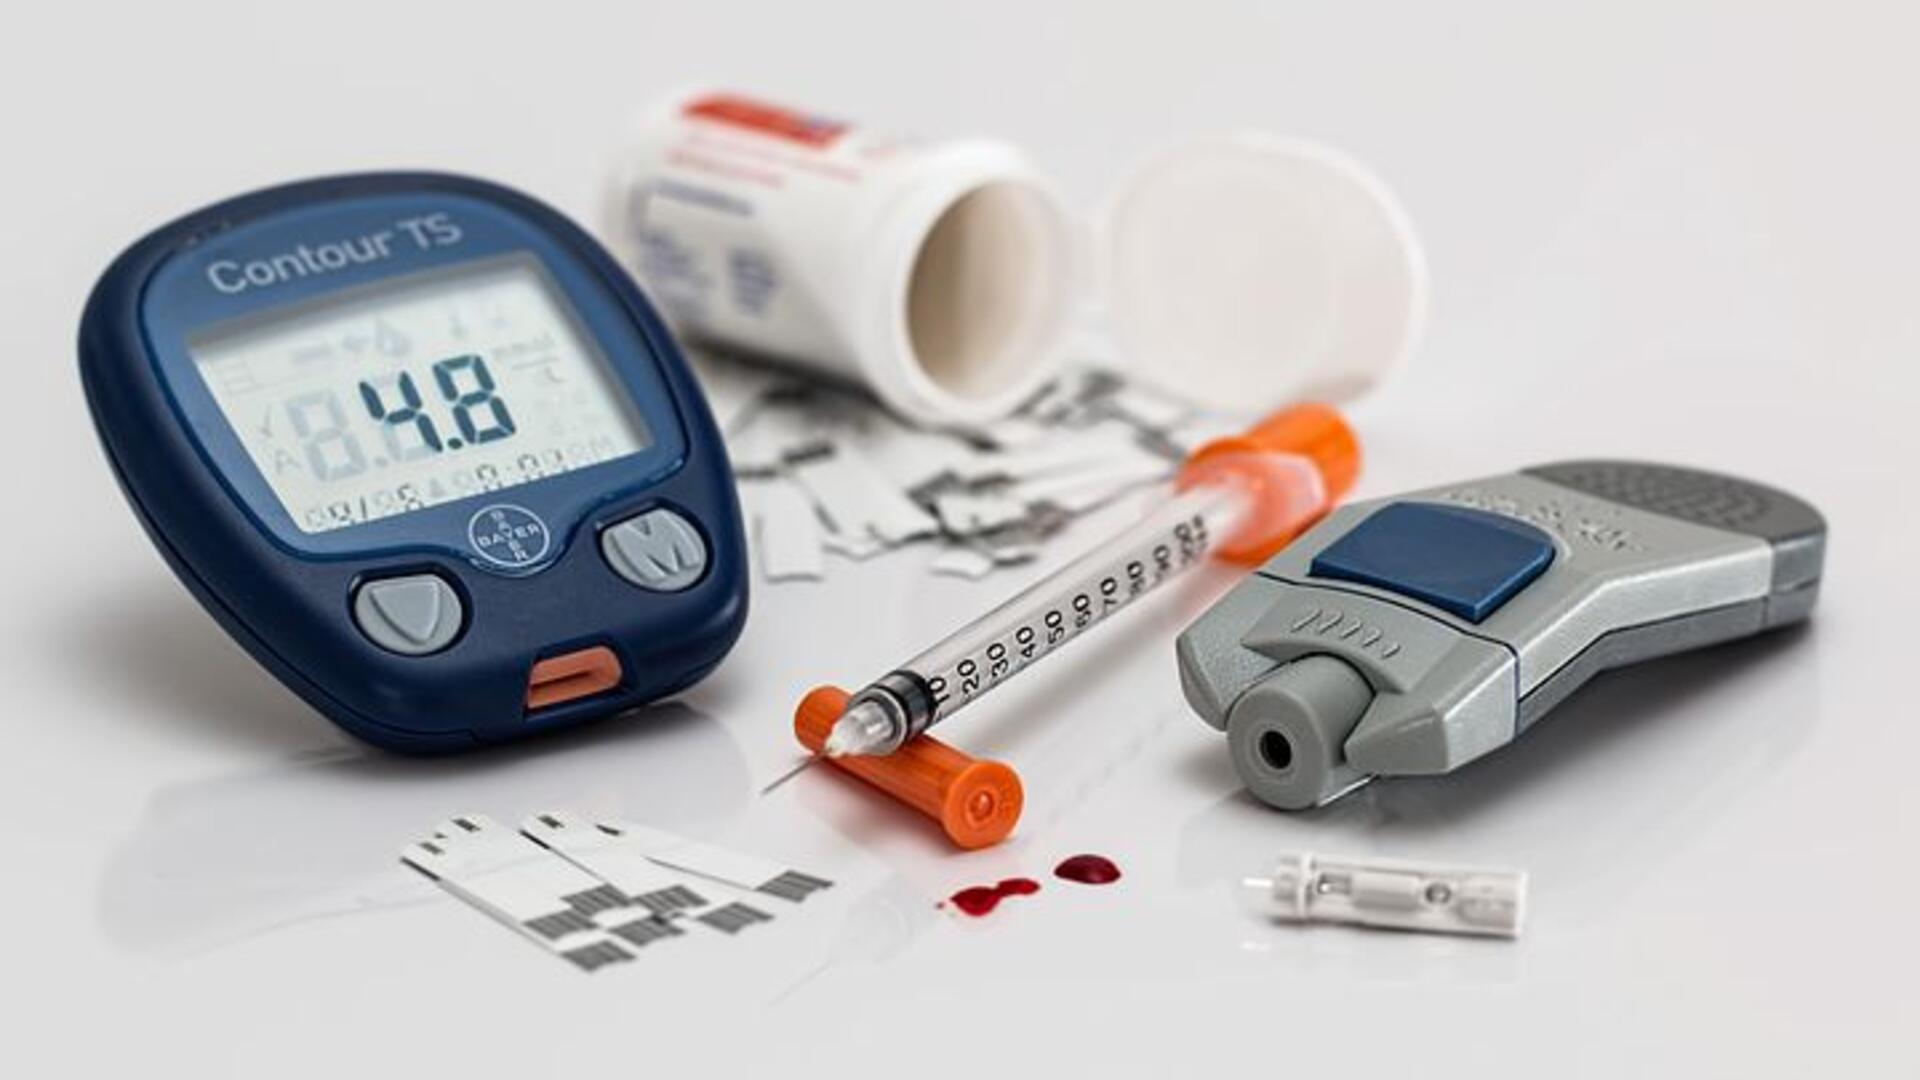 Stock image of diabetes medications and blood sugar testing machines.